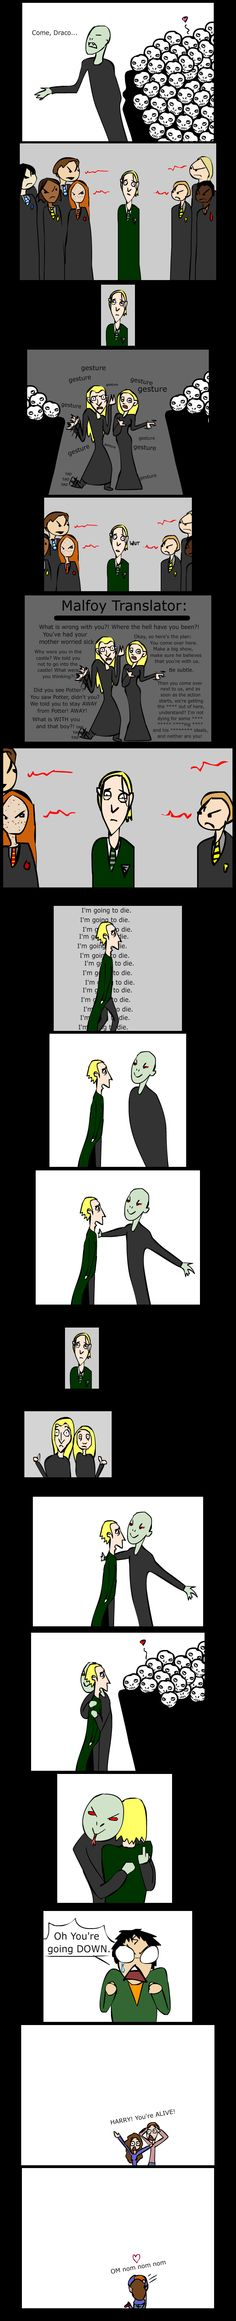 The terribly awkward hug from Deathly Hallows Part 2, by Deviant Art's airagoncharda.